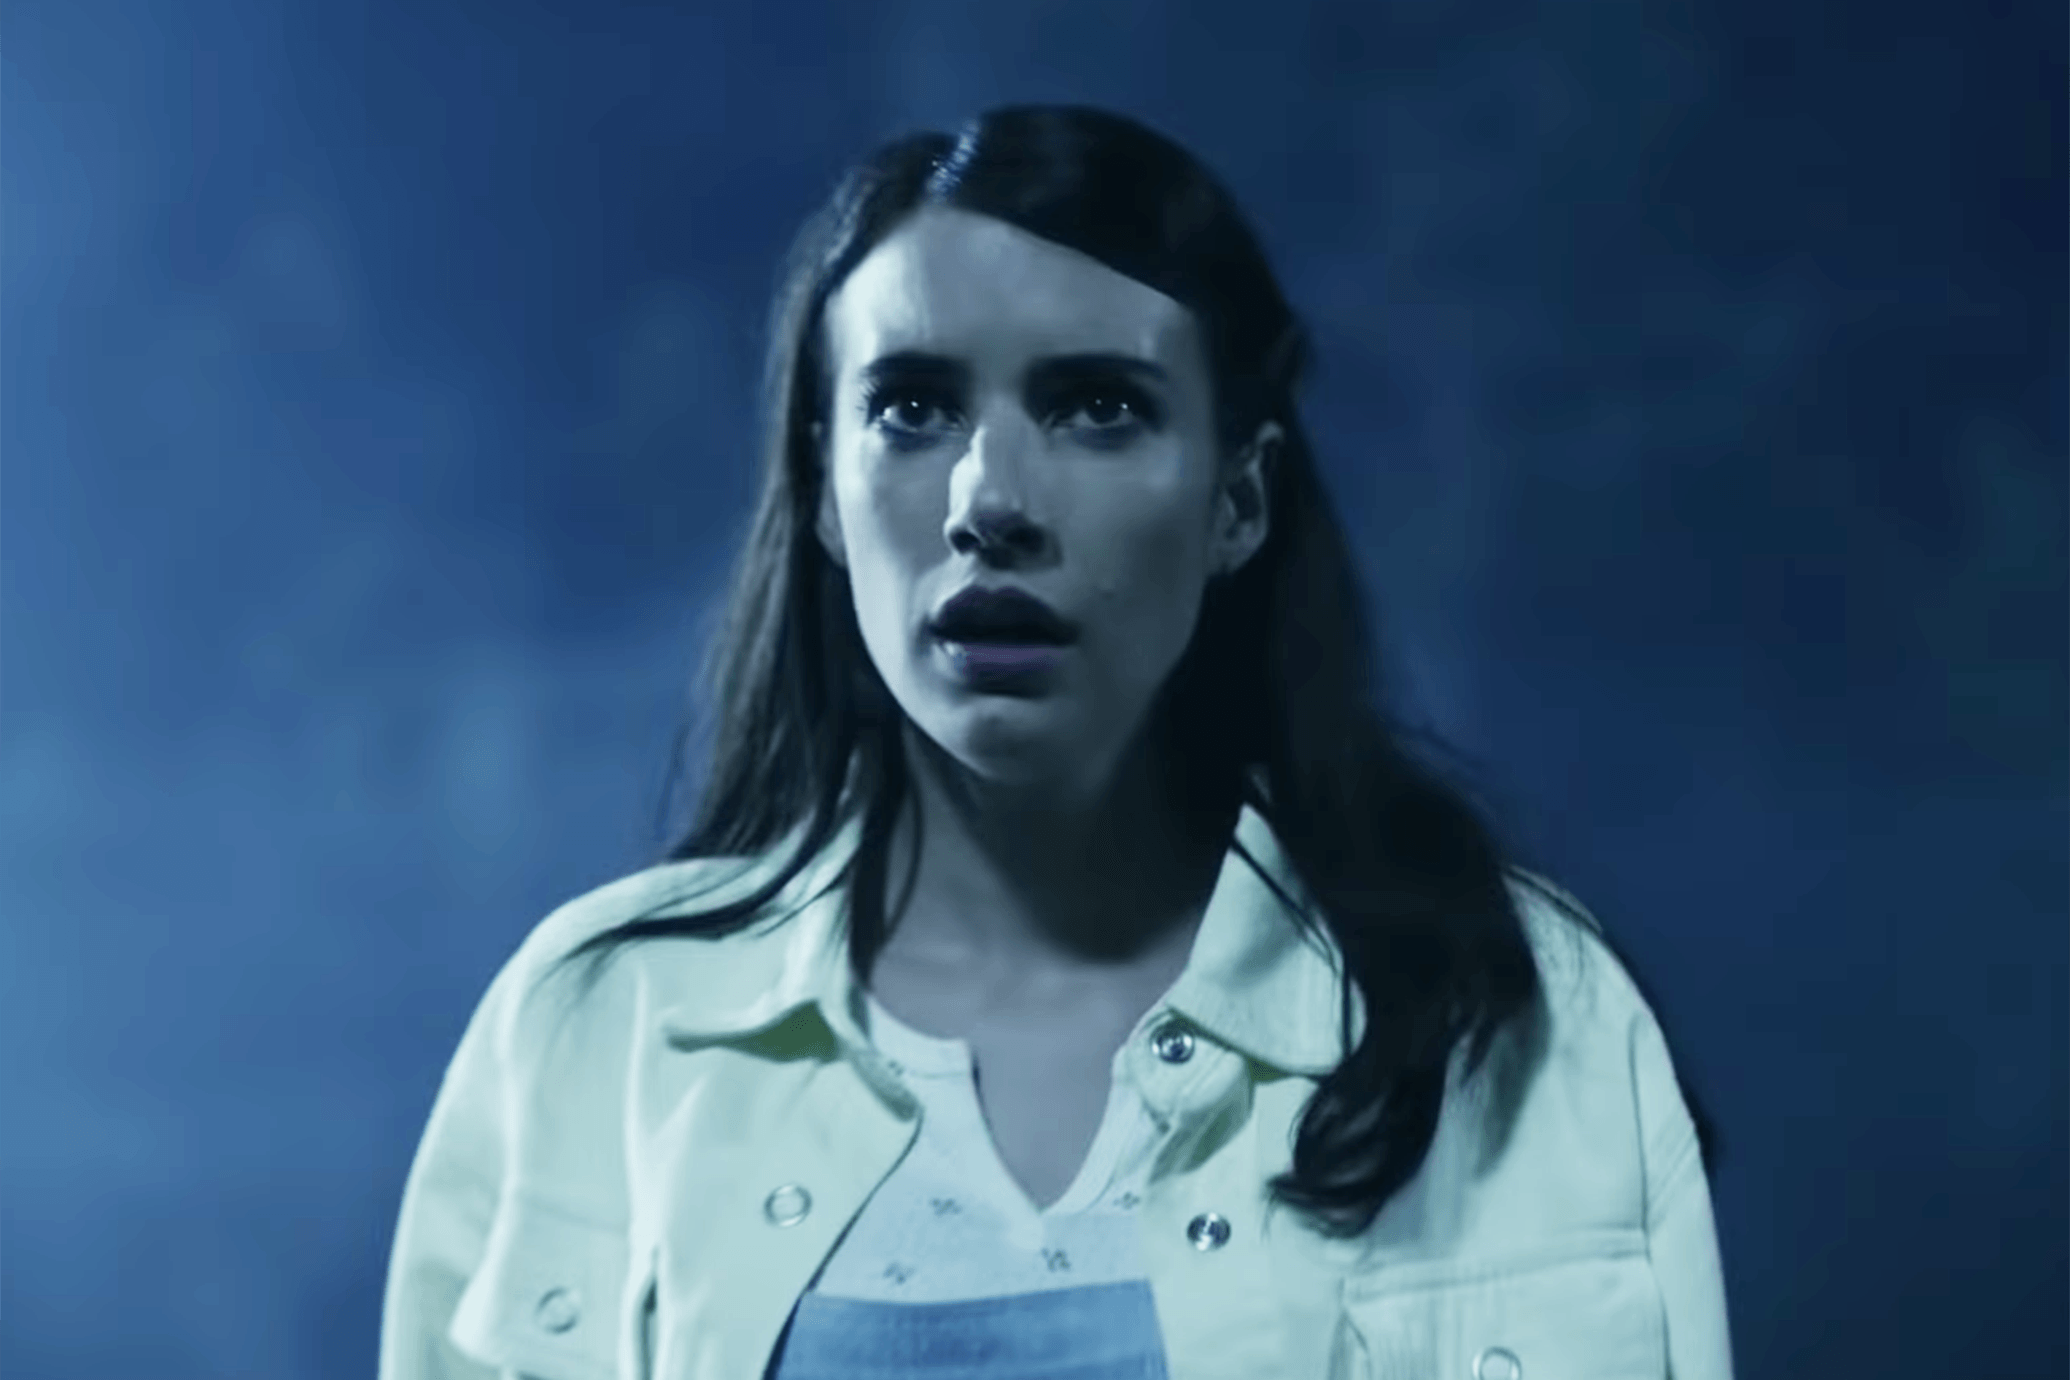 American Horror Story 1984: 7 Slasher Movies to Watch Before